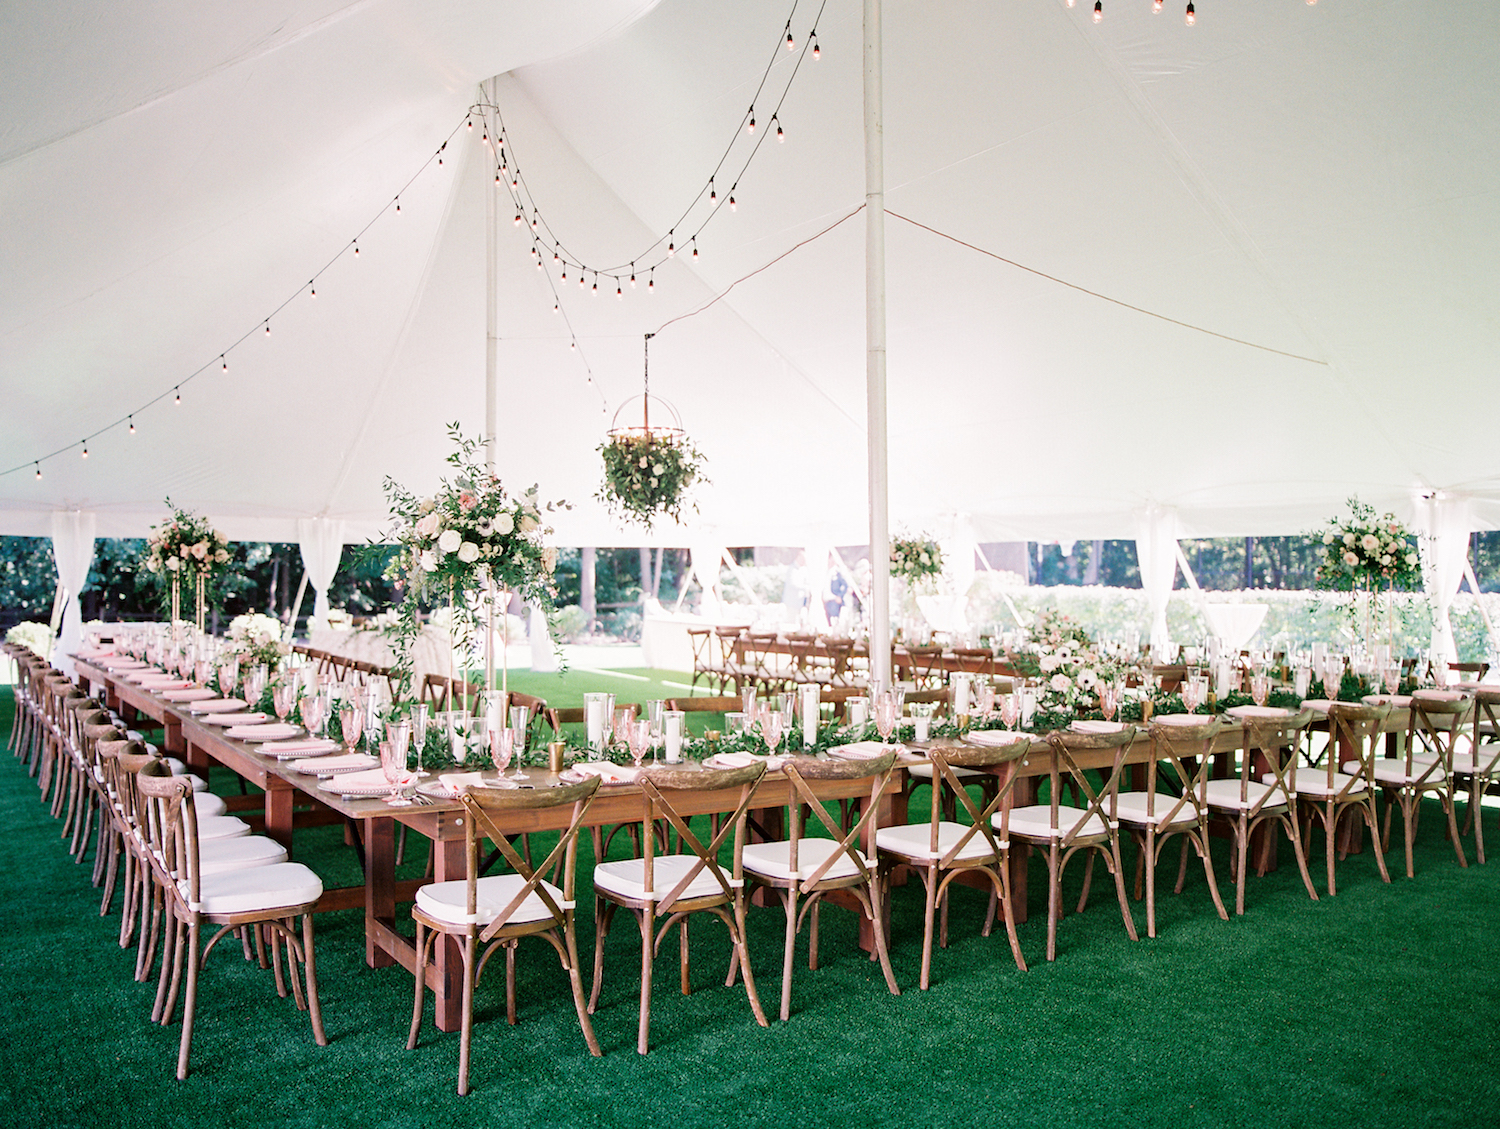 Table layout under tent for apple blossom resort wedding